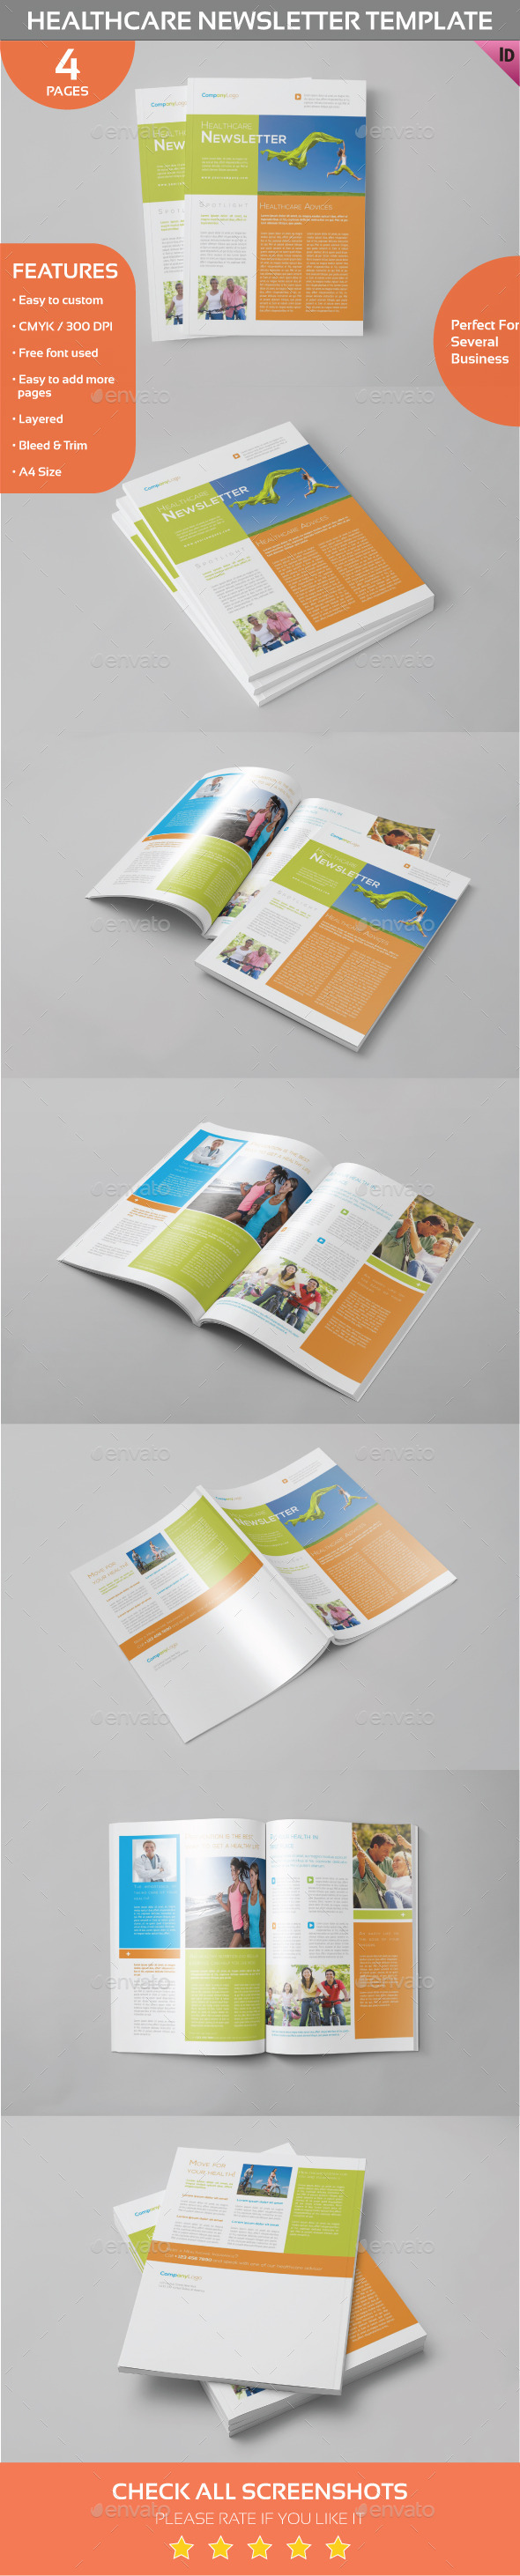 Healthcare Newsletter Template - Newsletters Print Templates